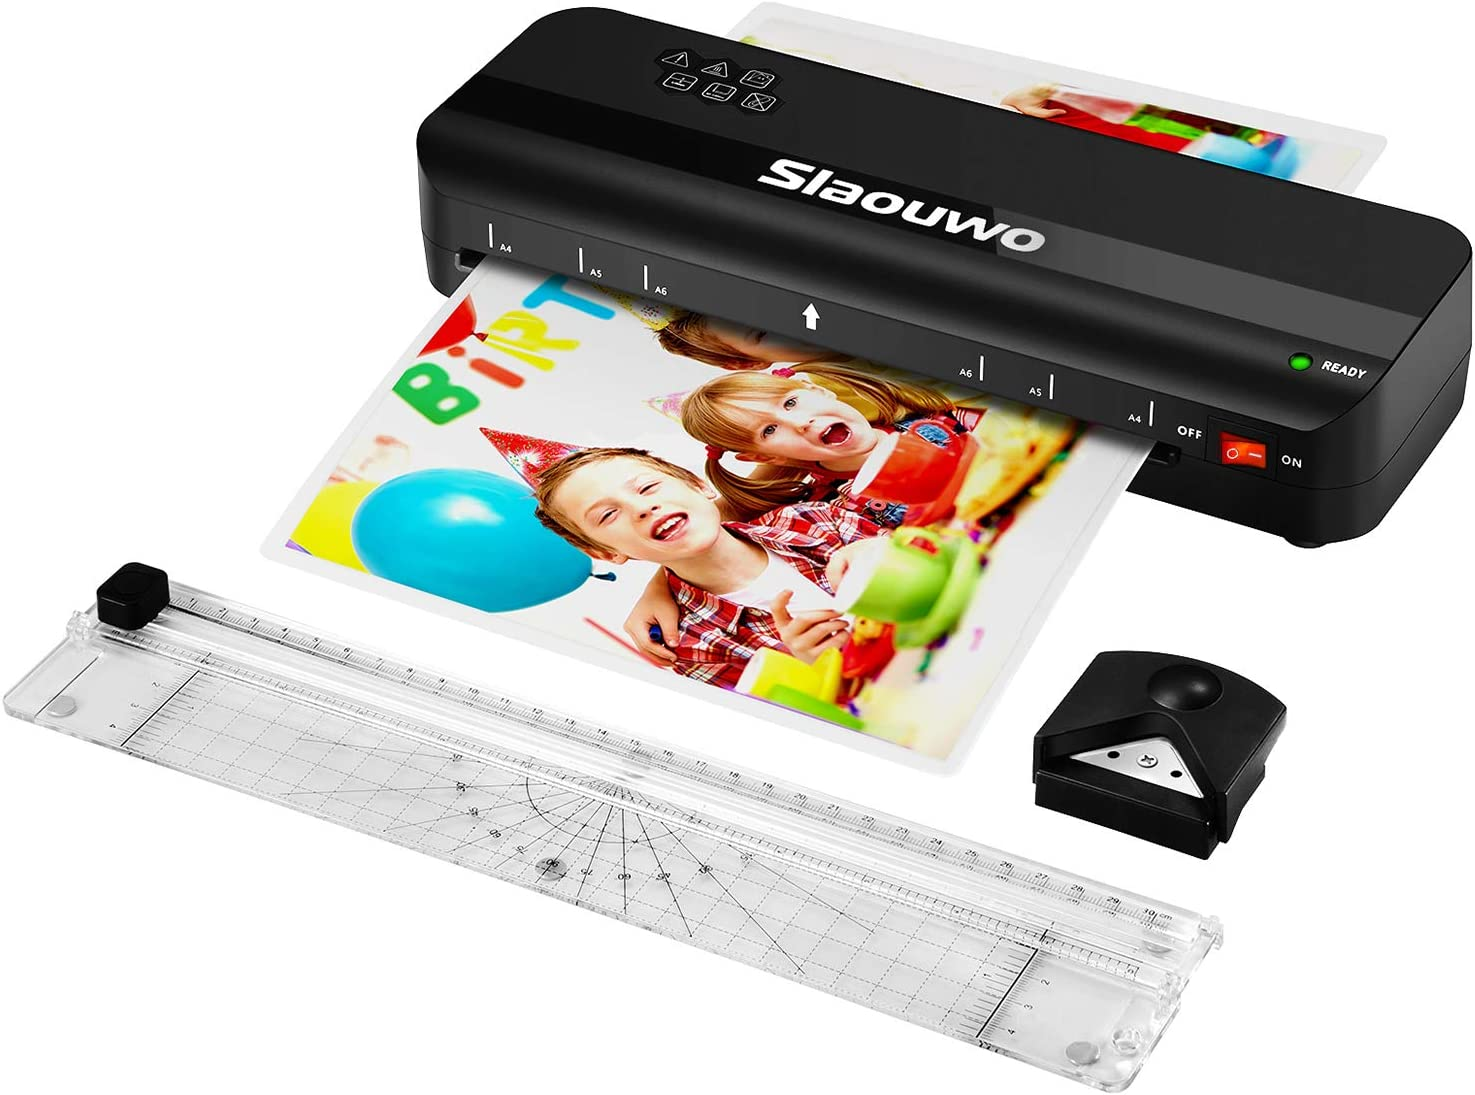 Laminator Machine, Slaouwo A4 Thermal Laminator Machine with 30 Laminating Sheets, 4 in 1 Portable Laminator with Paper Trimmer and Corner Rounder